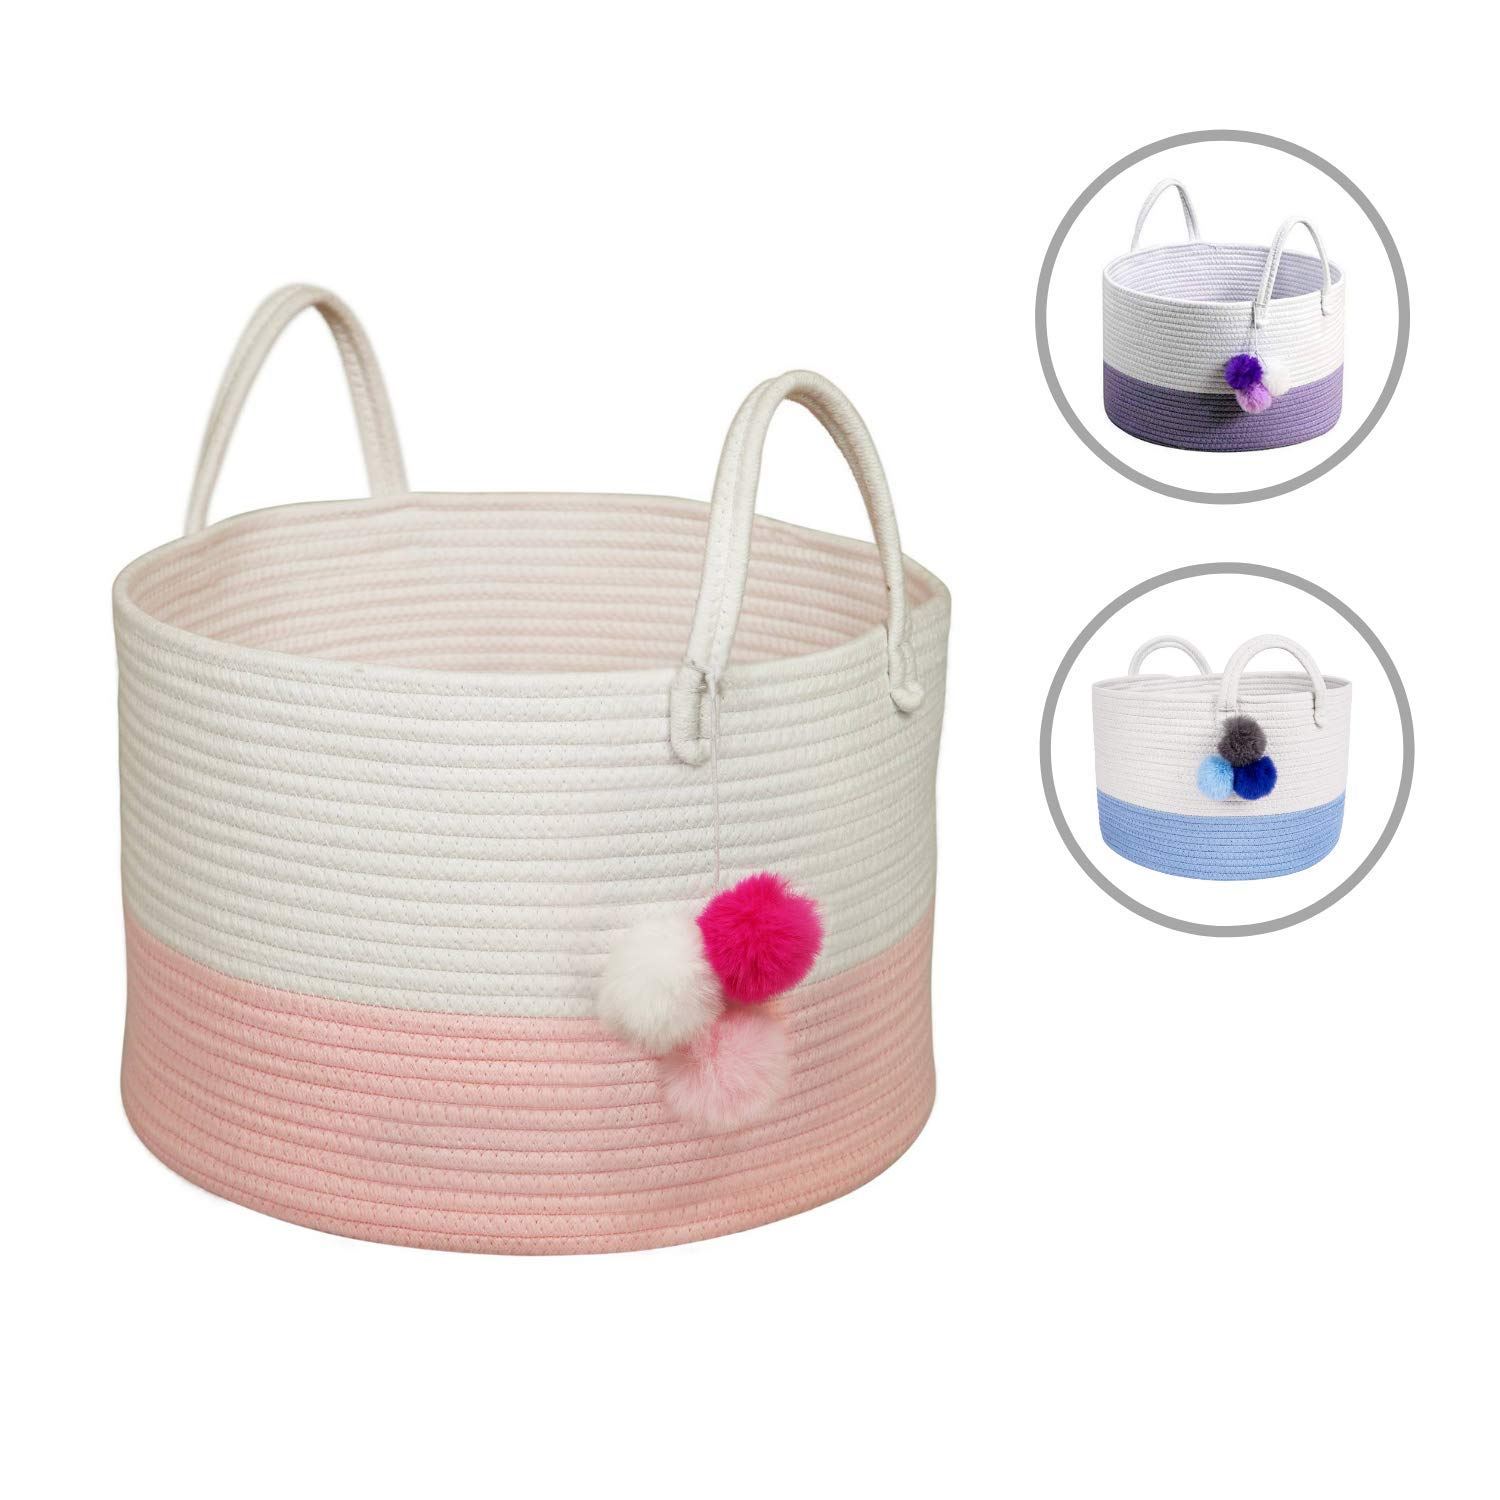 Solaya Short Pink Cotton Rope Basket Storage 16''x10''- Large Natural Cotton Woven Basket w/Handles - Decorative Storage Basket for Laundry, Clothes, Diapers, Toys, Hamper, Towels by Solaya